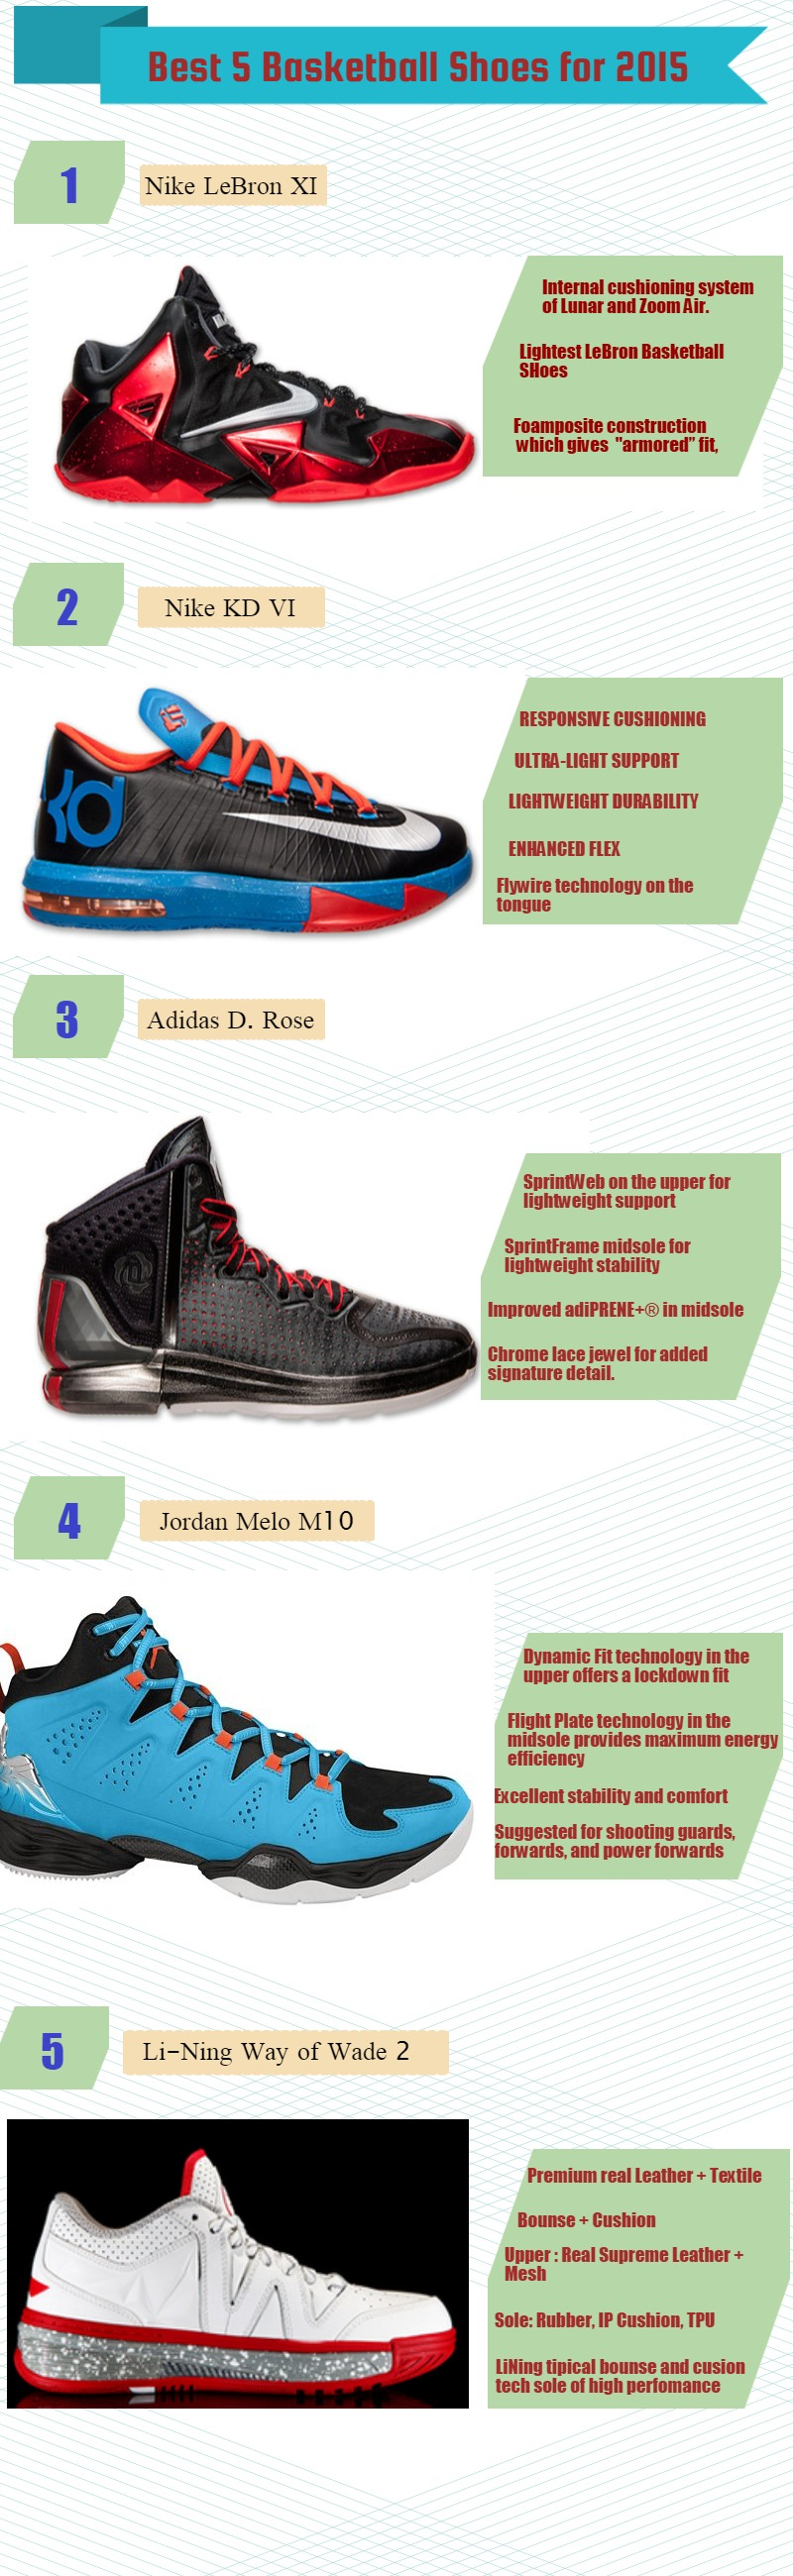 Best 5 Basketball Shoes Ever, Infographic on Basketball shoes , List of Best Basketball shoes